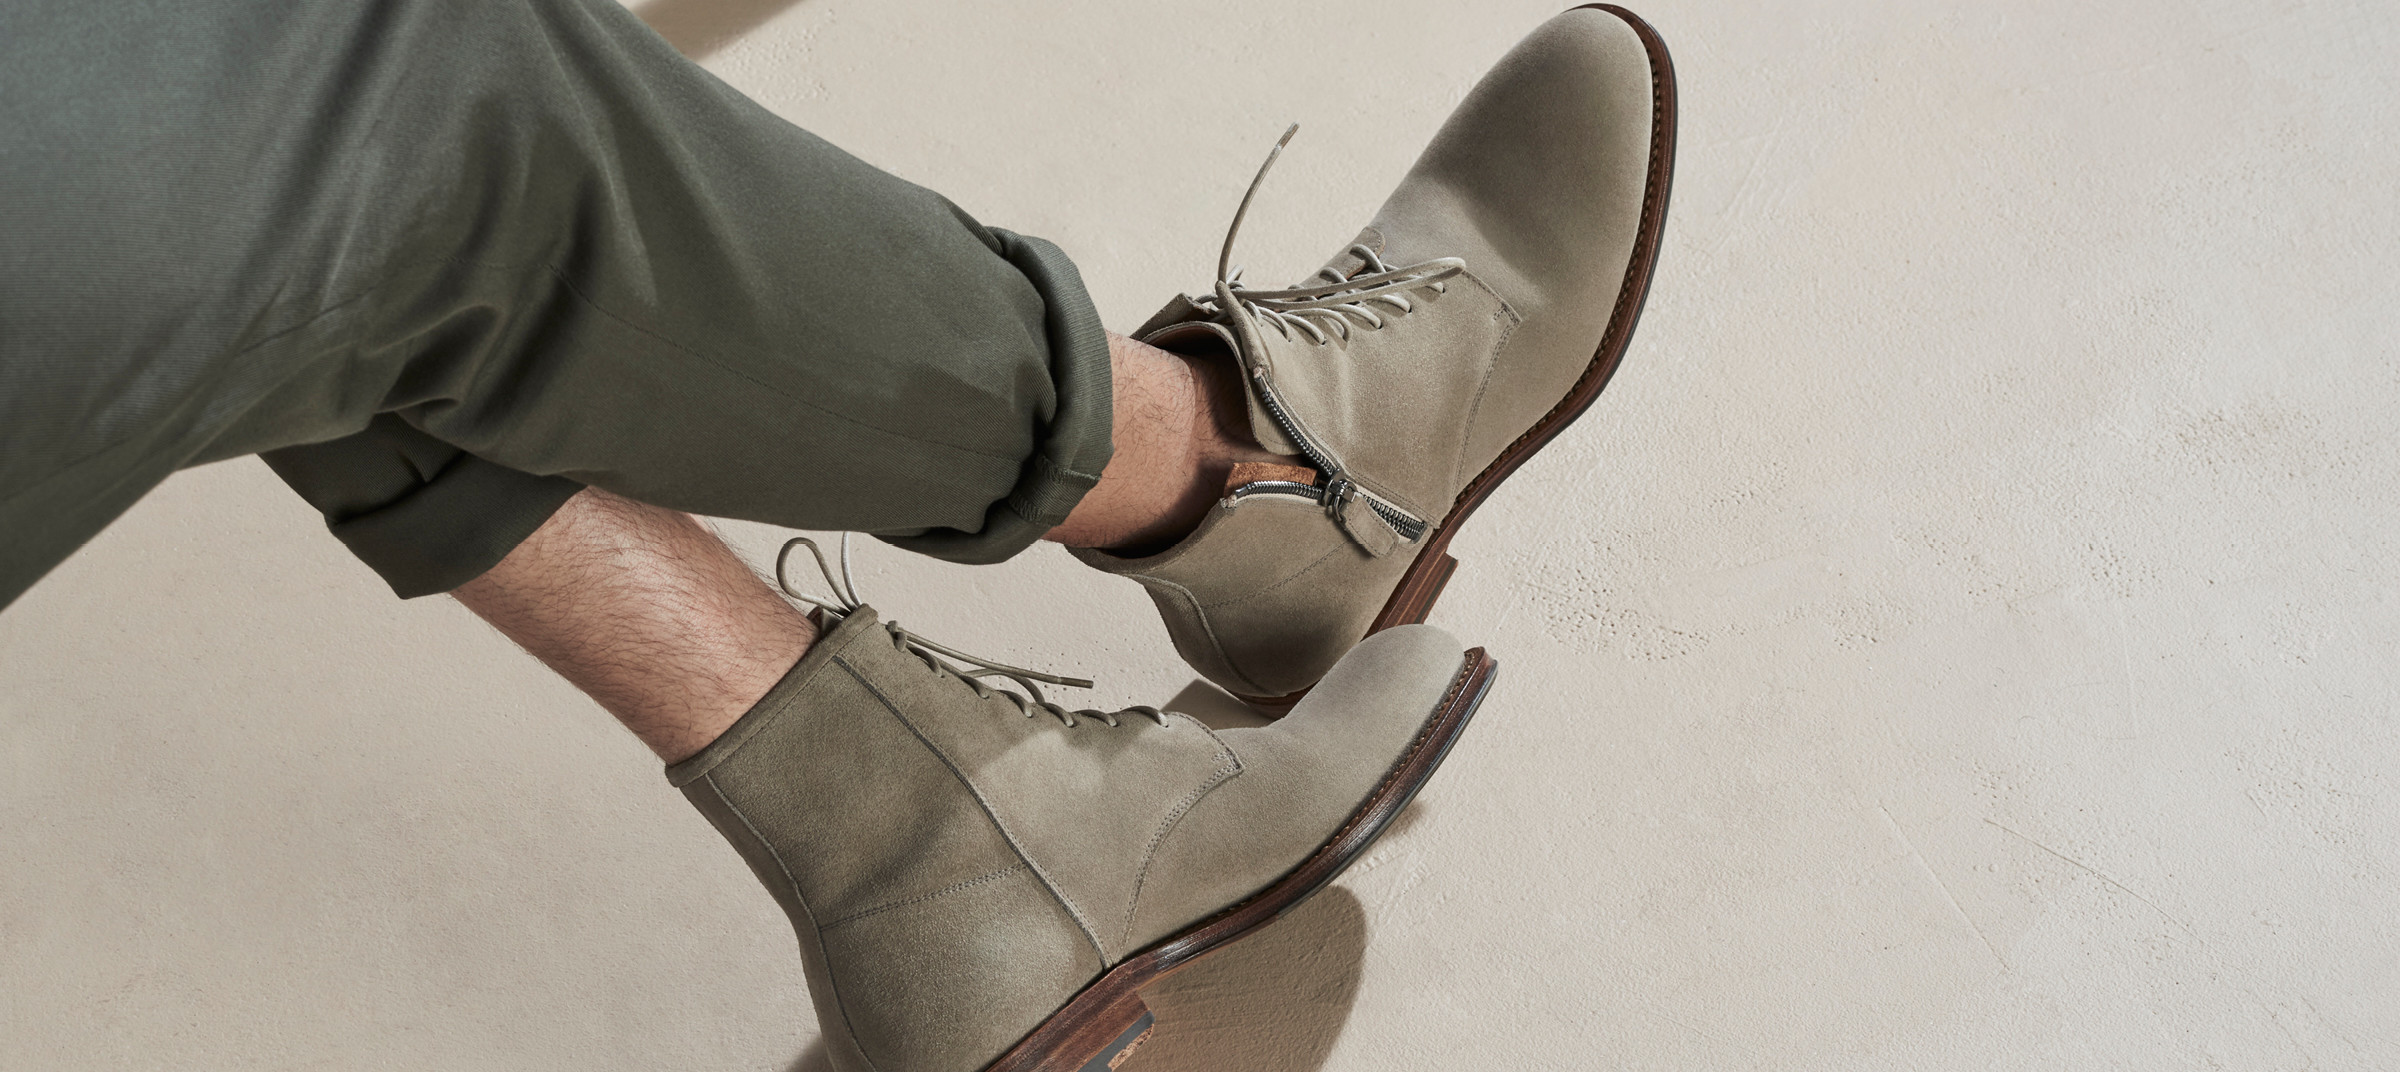 Aquatalia men's shoes shot and produced by DTE for campaign.